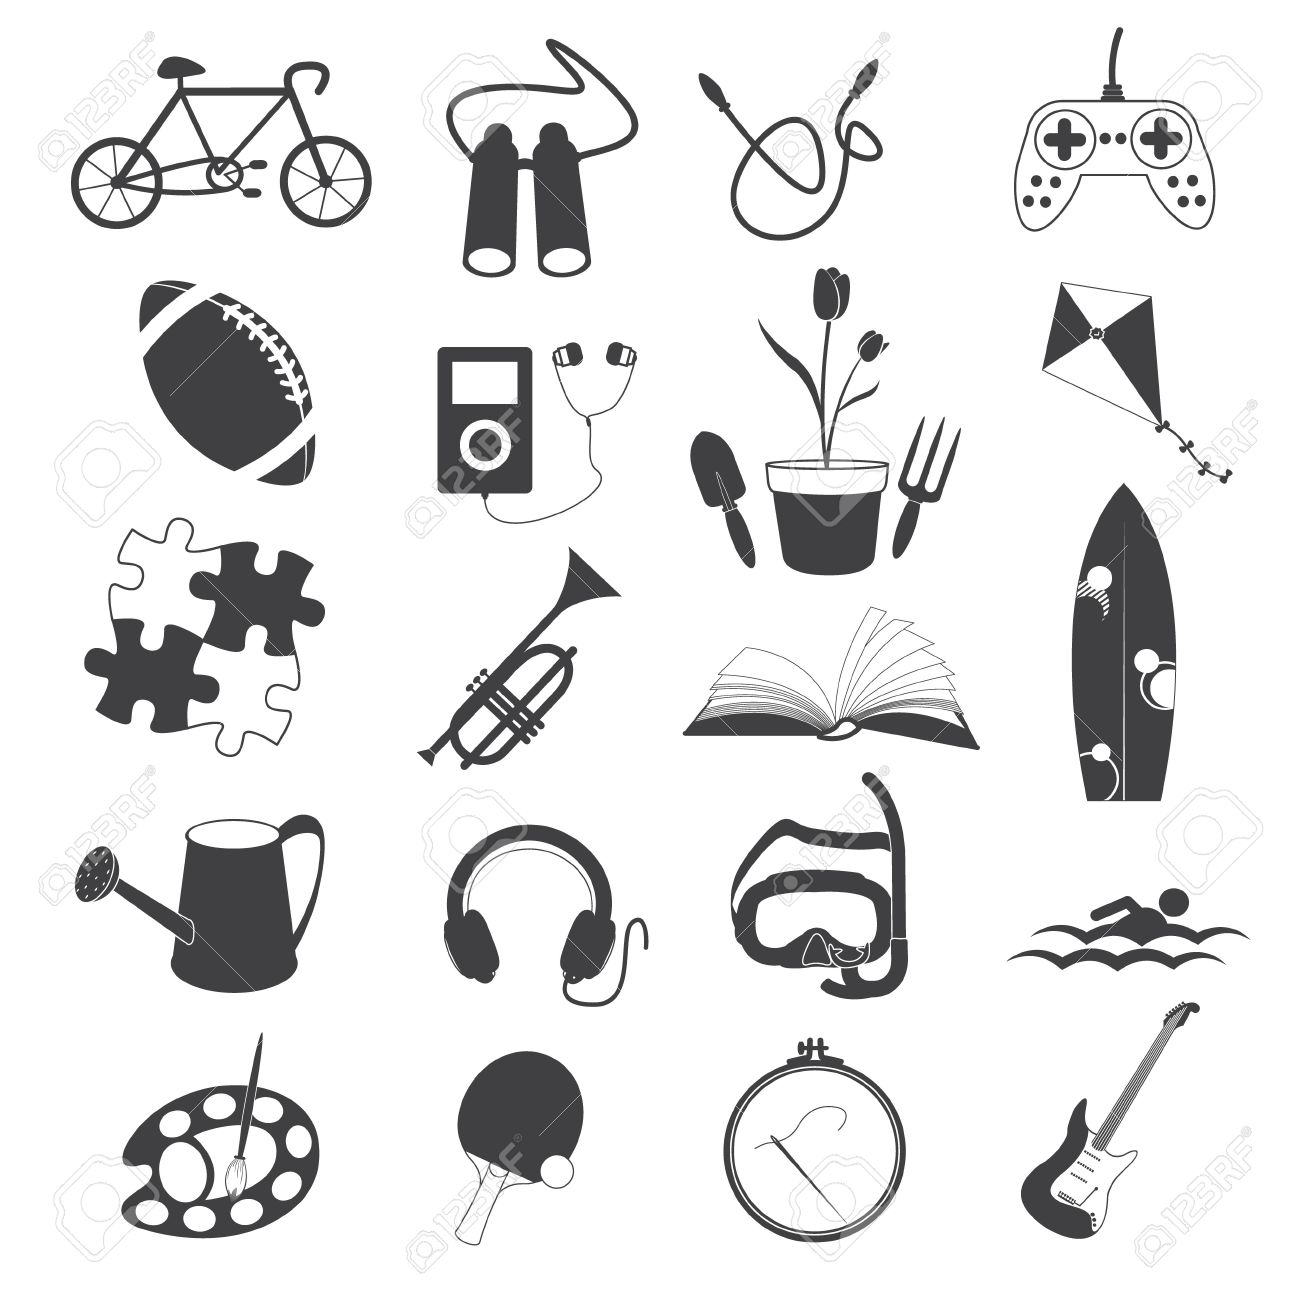 Hobby Icons Isolated on White Background.